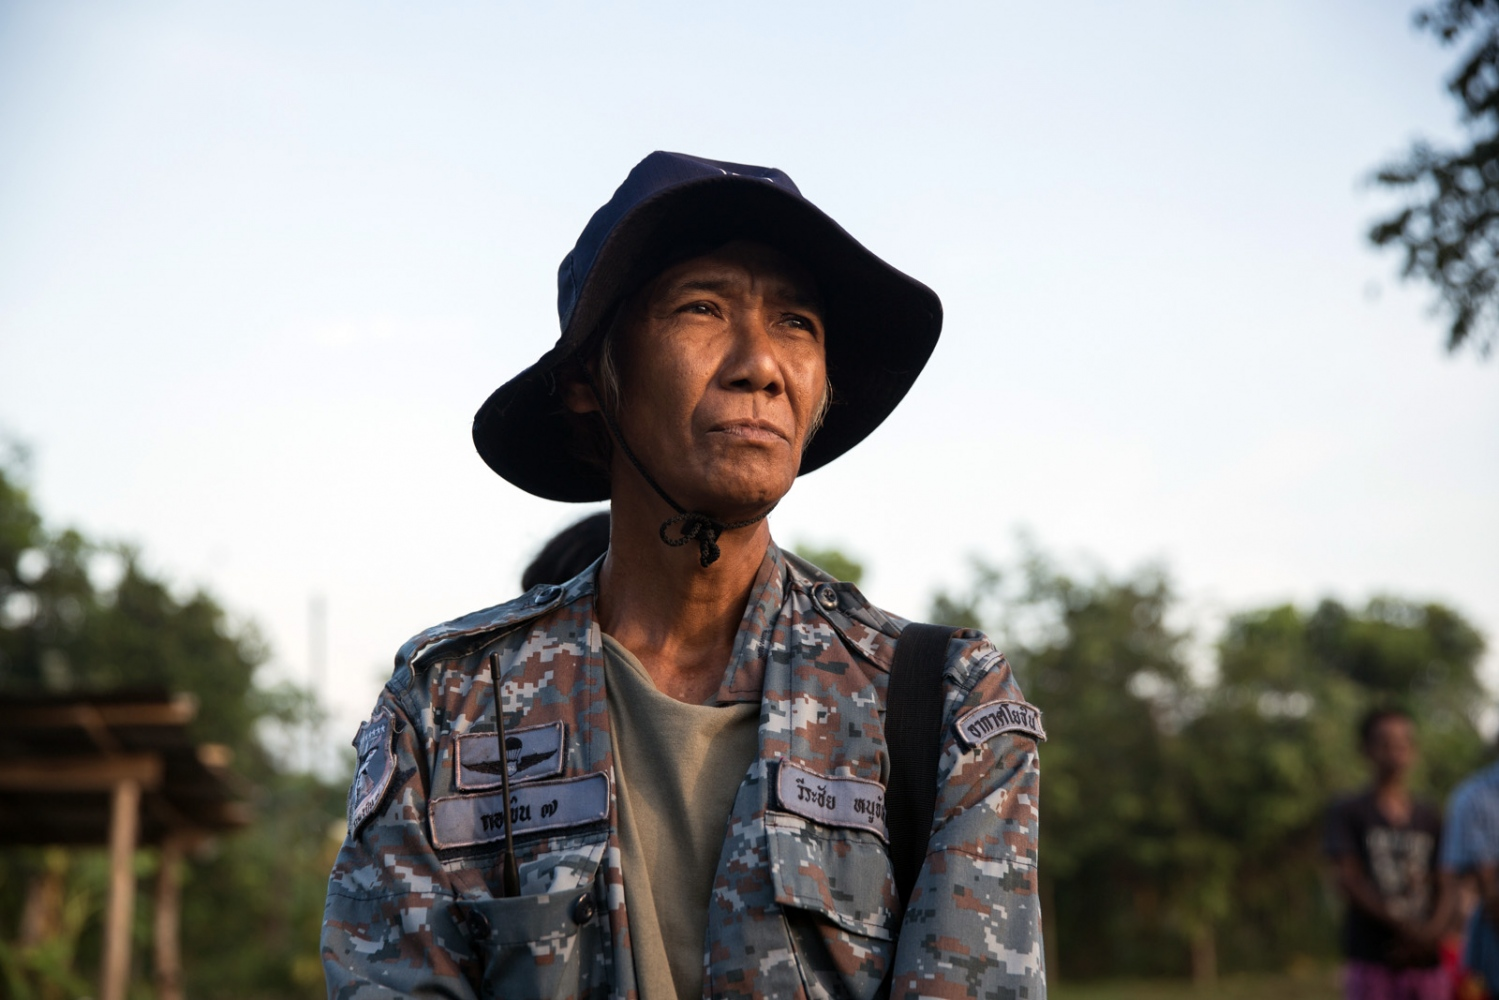 A villager of Klong Sai Pattana stands during an early morning meeting held in the community. December 2018.